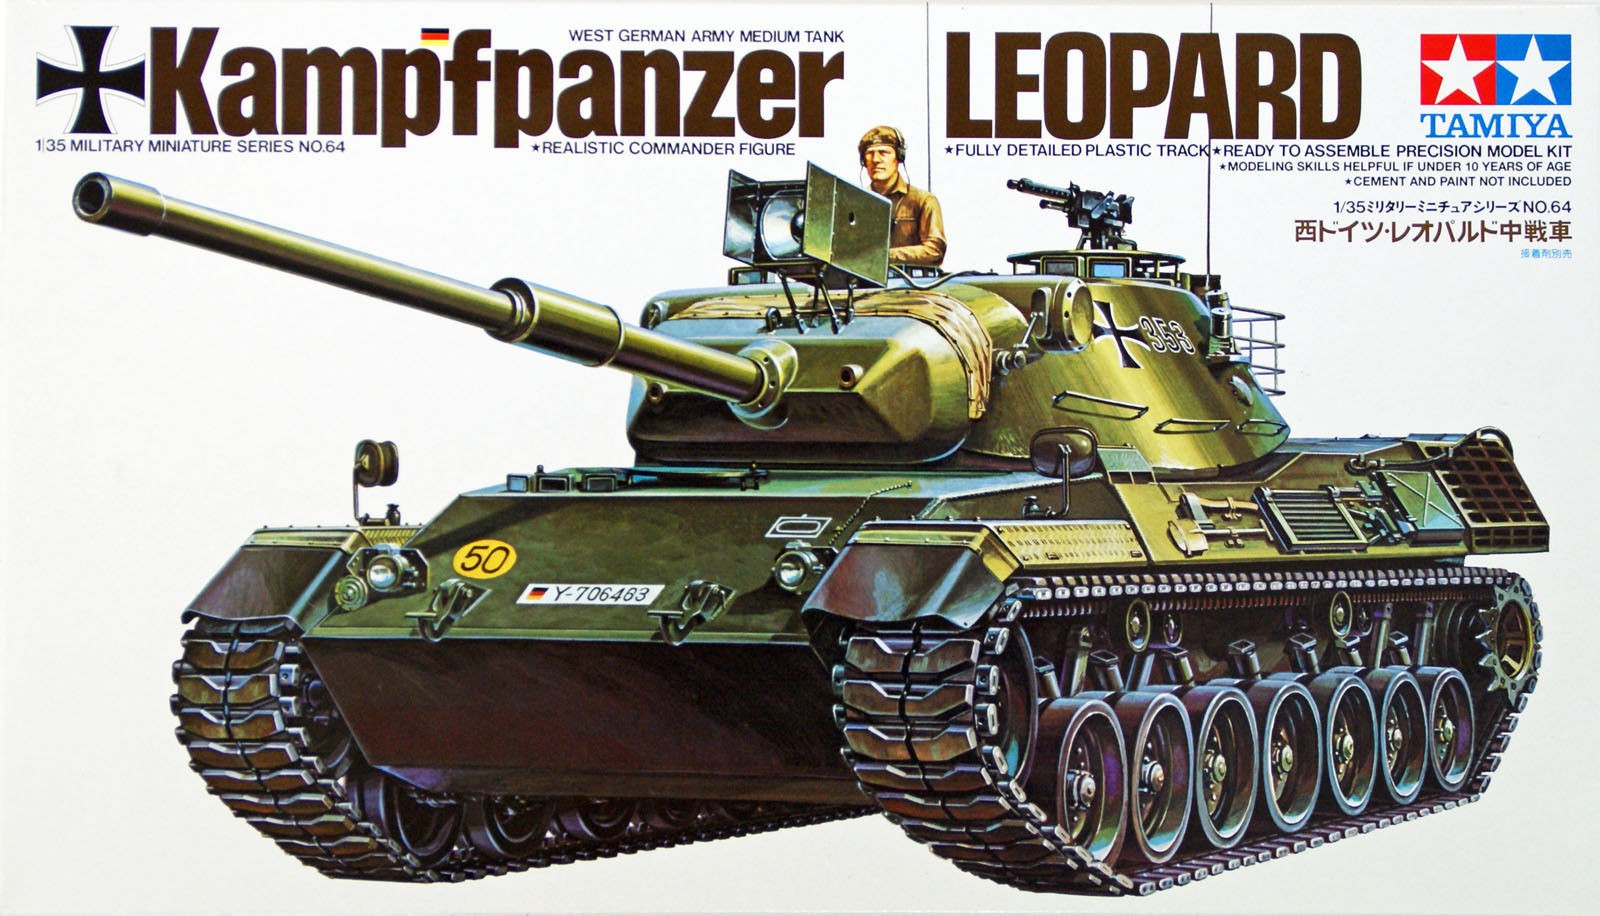 German Leopard Medium Tank Kit - Tamiya 35064 - plastic model kit - 1/35 scale